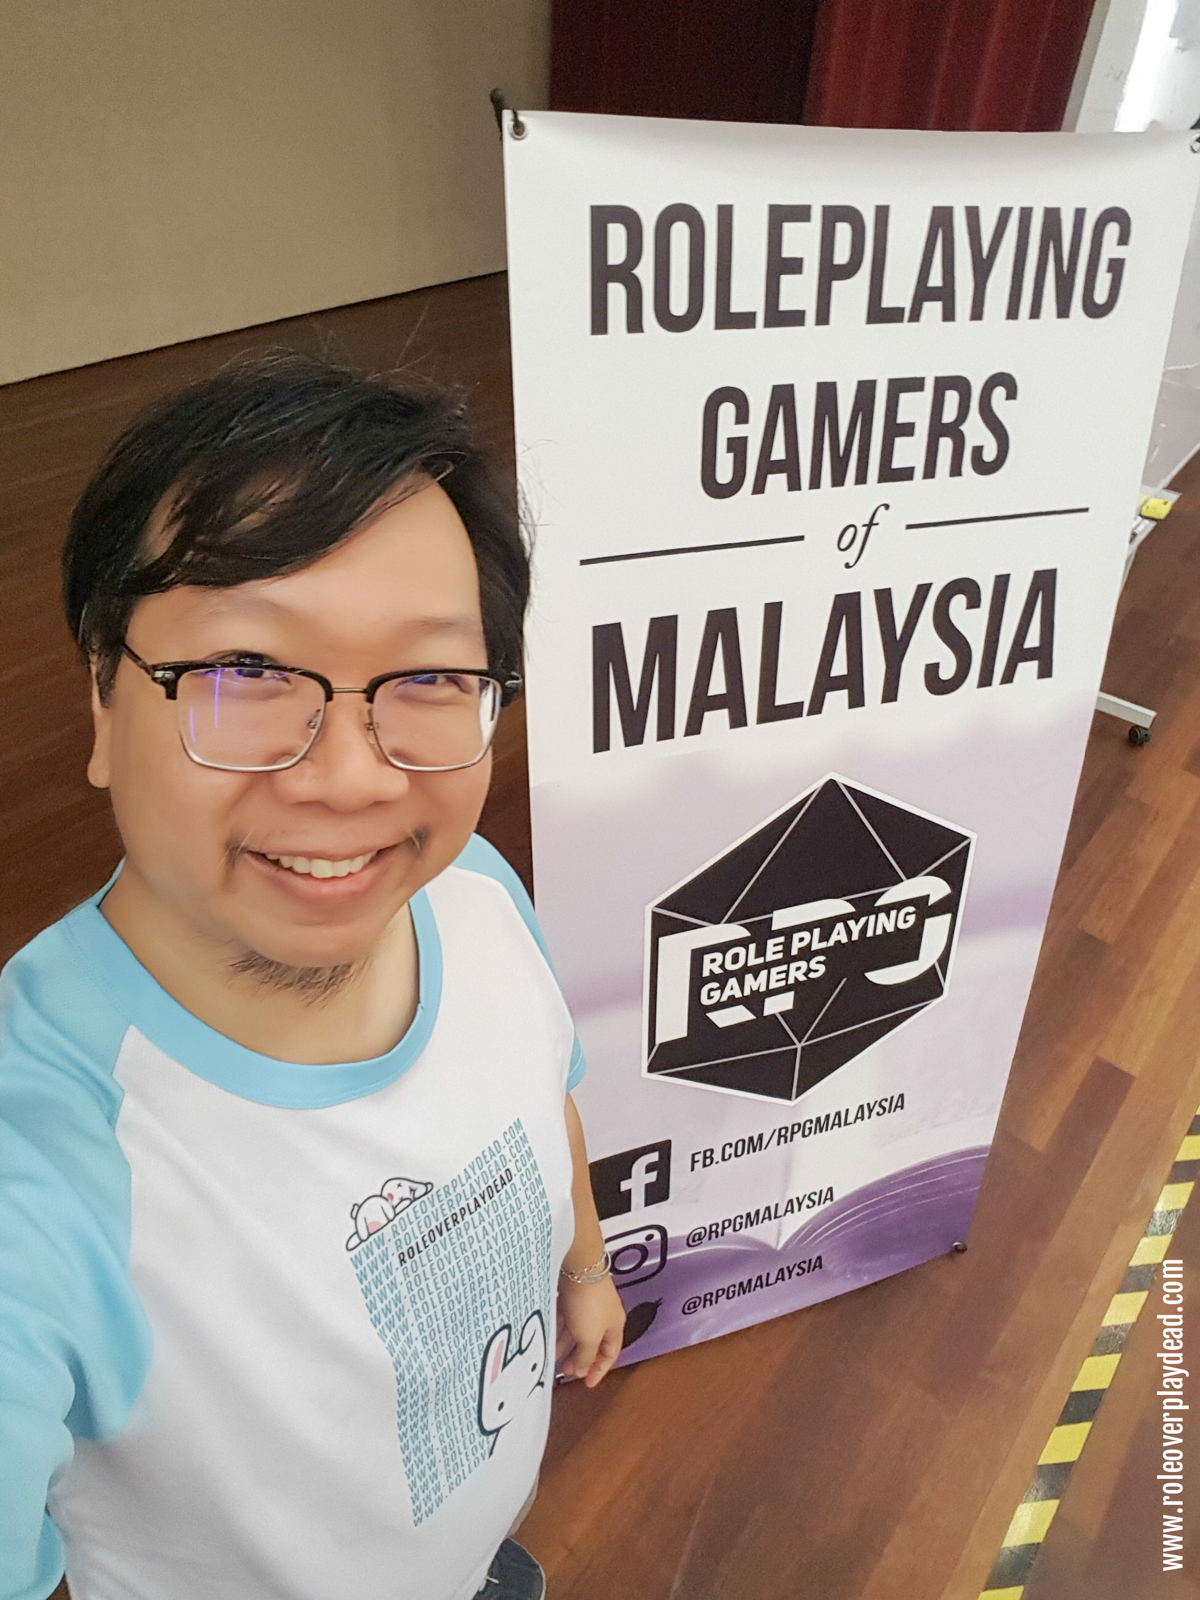 Helping out and doing my part for RPGMY - RolePlaying Gamers of Malaysia.